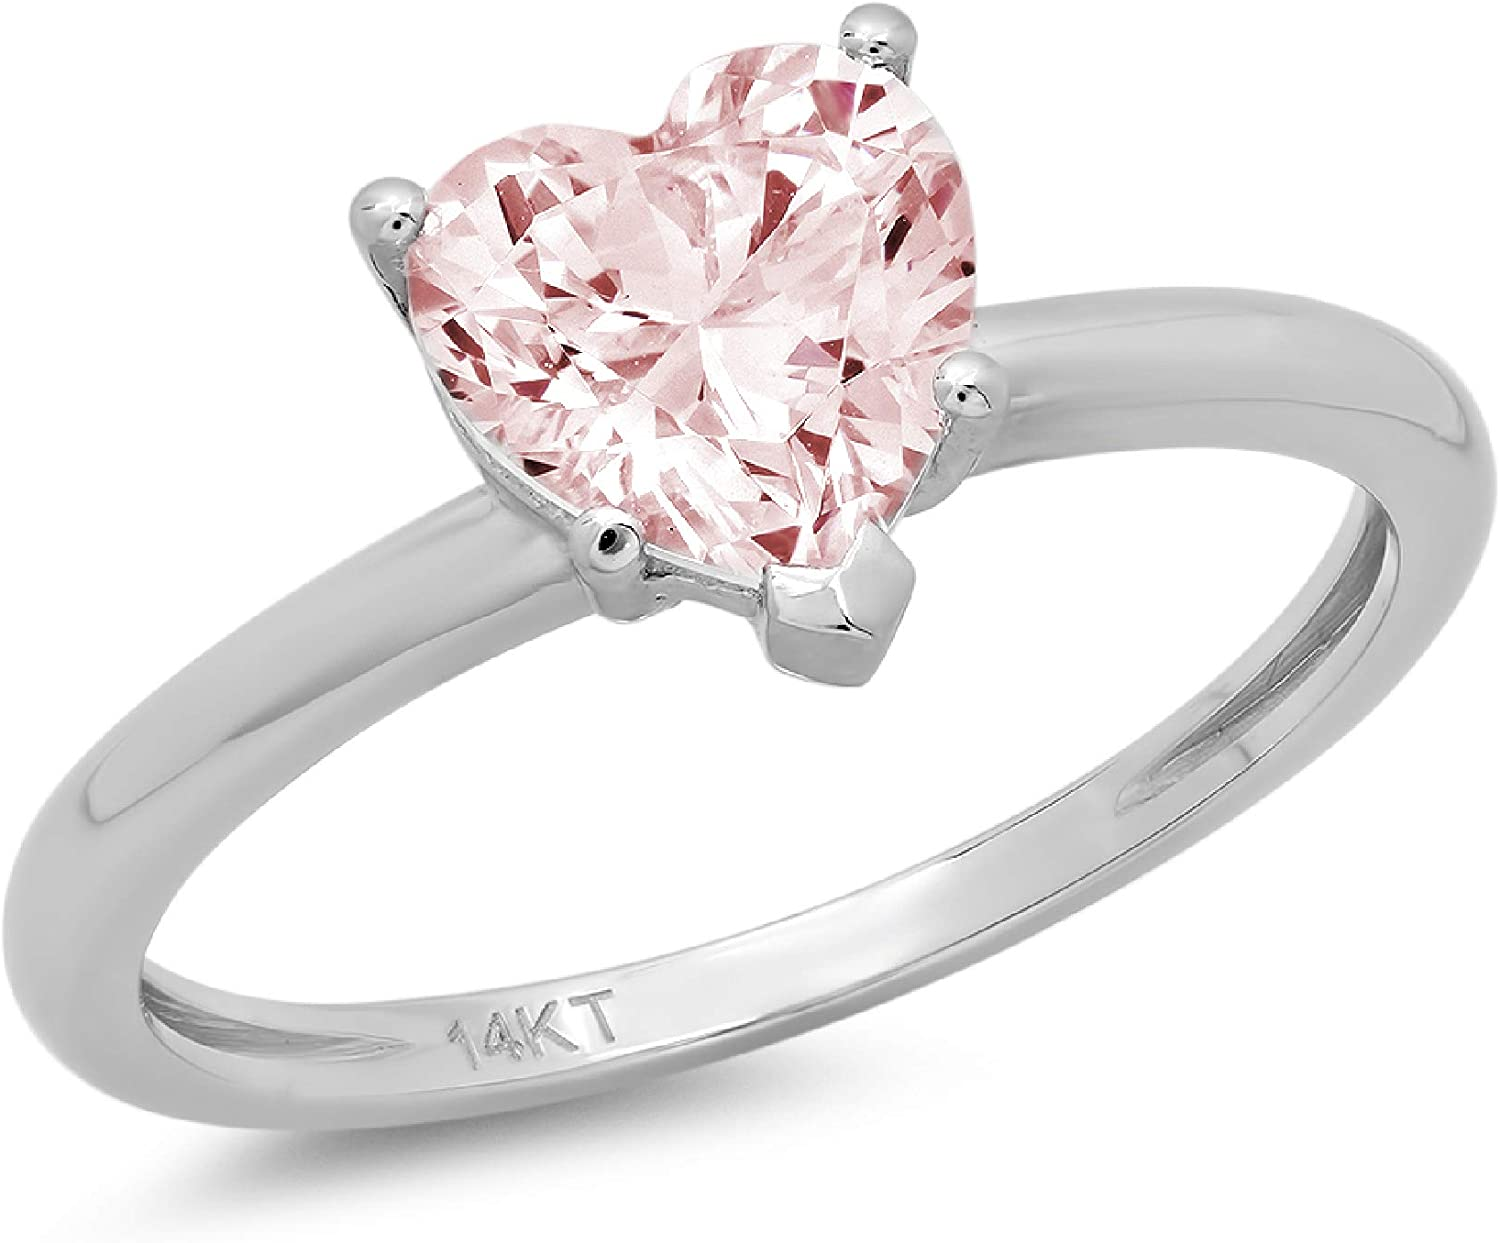 1.9ct Brilliant Heart Cut Solitaire Pink Simulated Diamond Cubic Zirconia Ideal VVS1 D 5-Prong Engagement Wedding Bridal Promise Anniversary Ring Solid 14k White Gold for Women